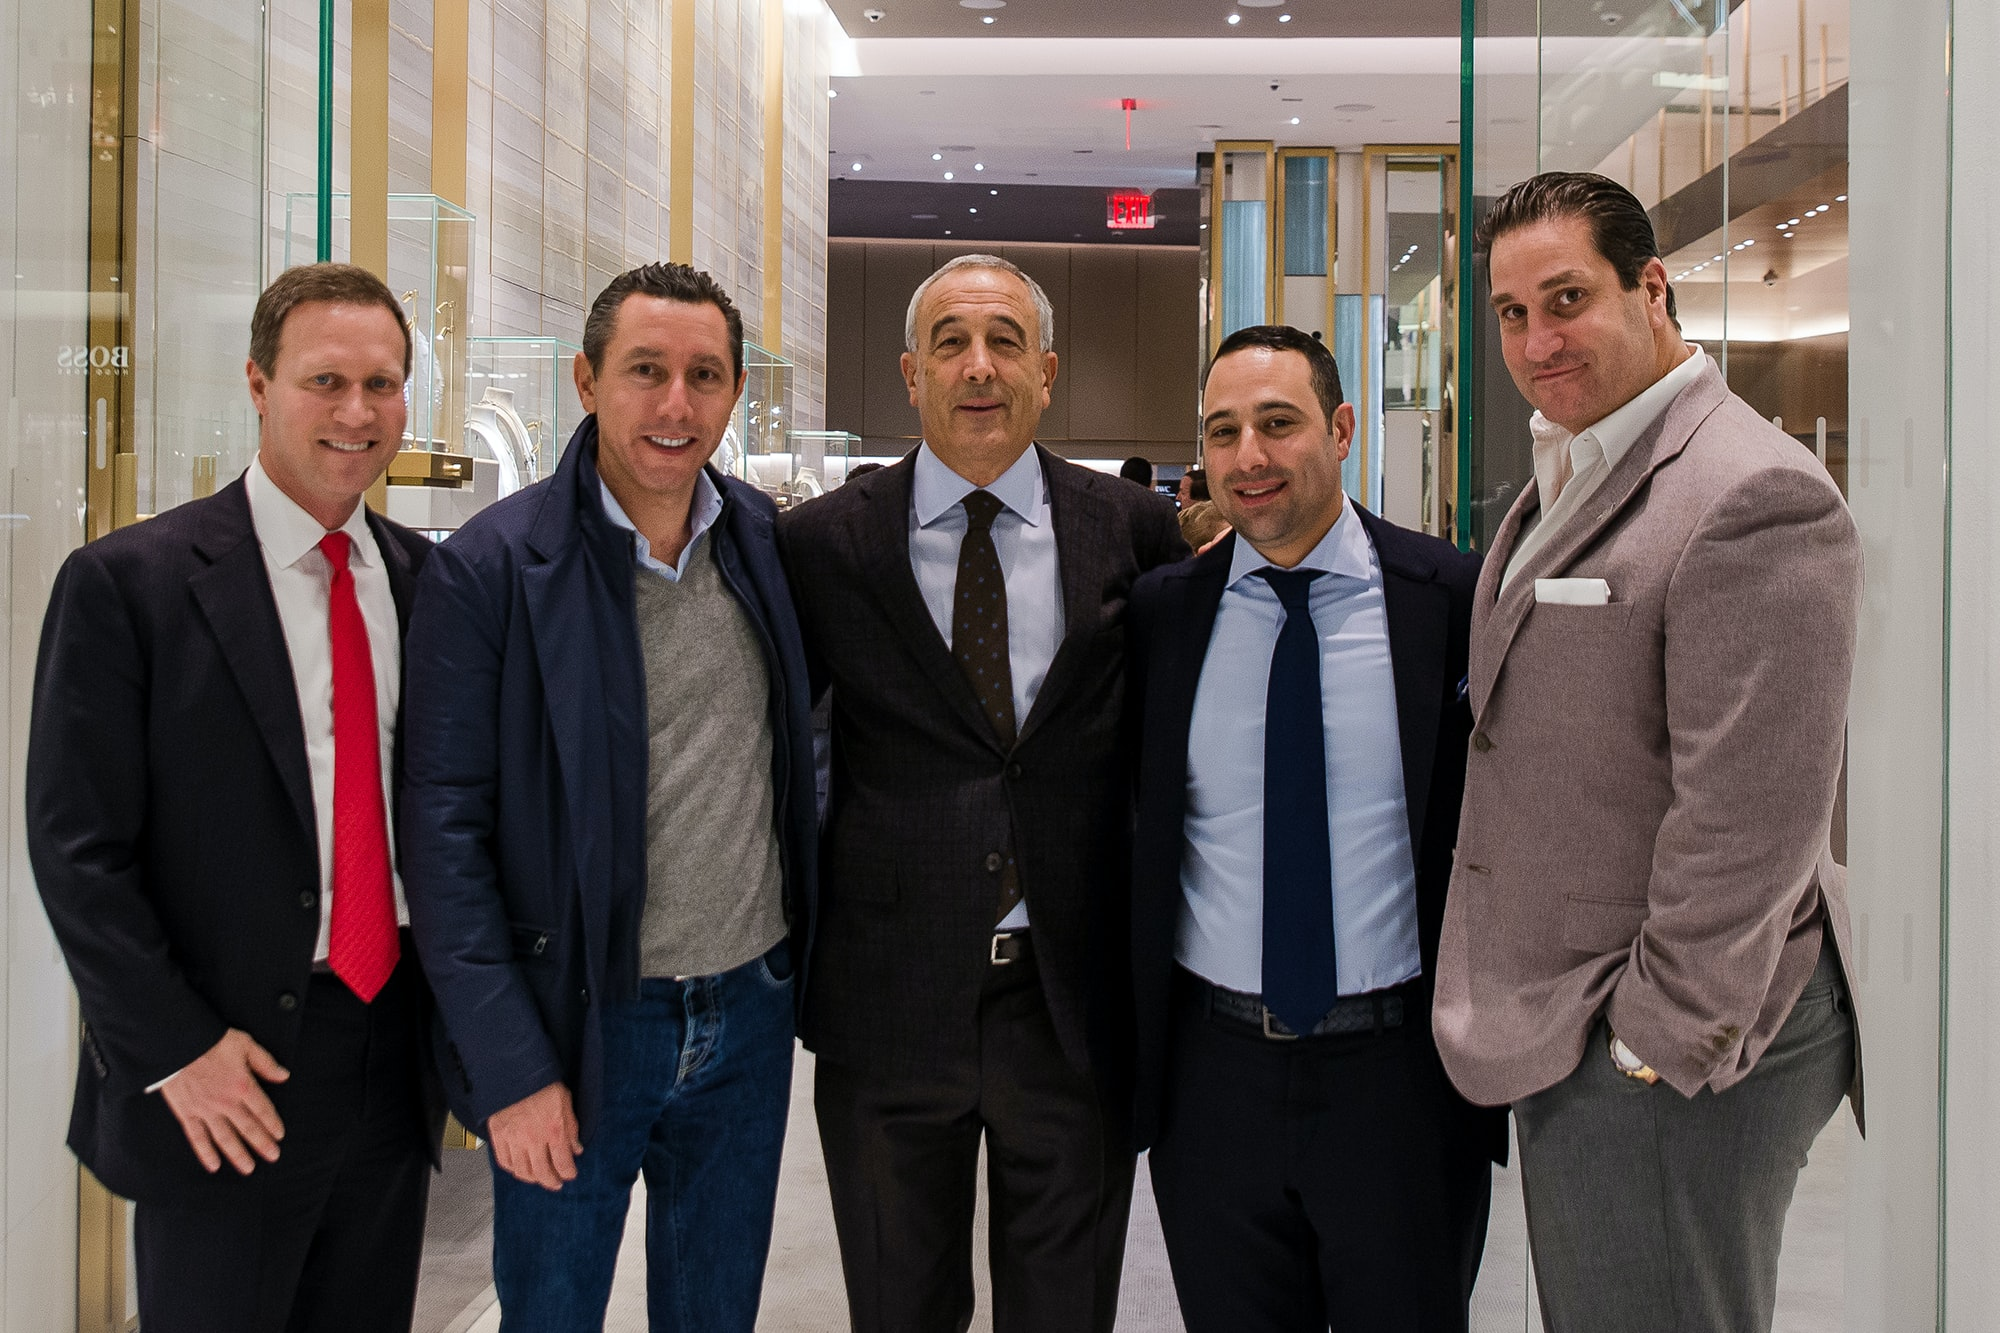 Photo Report: HODINKEE Celebrates London Jewelers' New Store In New York City's Oculus Photo Report: HODINKEE Celebrates London Jewelers' New Store In New York City's Oculus 20161109 LondonJewelersxHodinkee 069